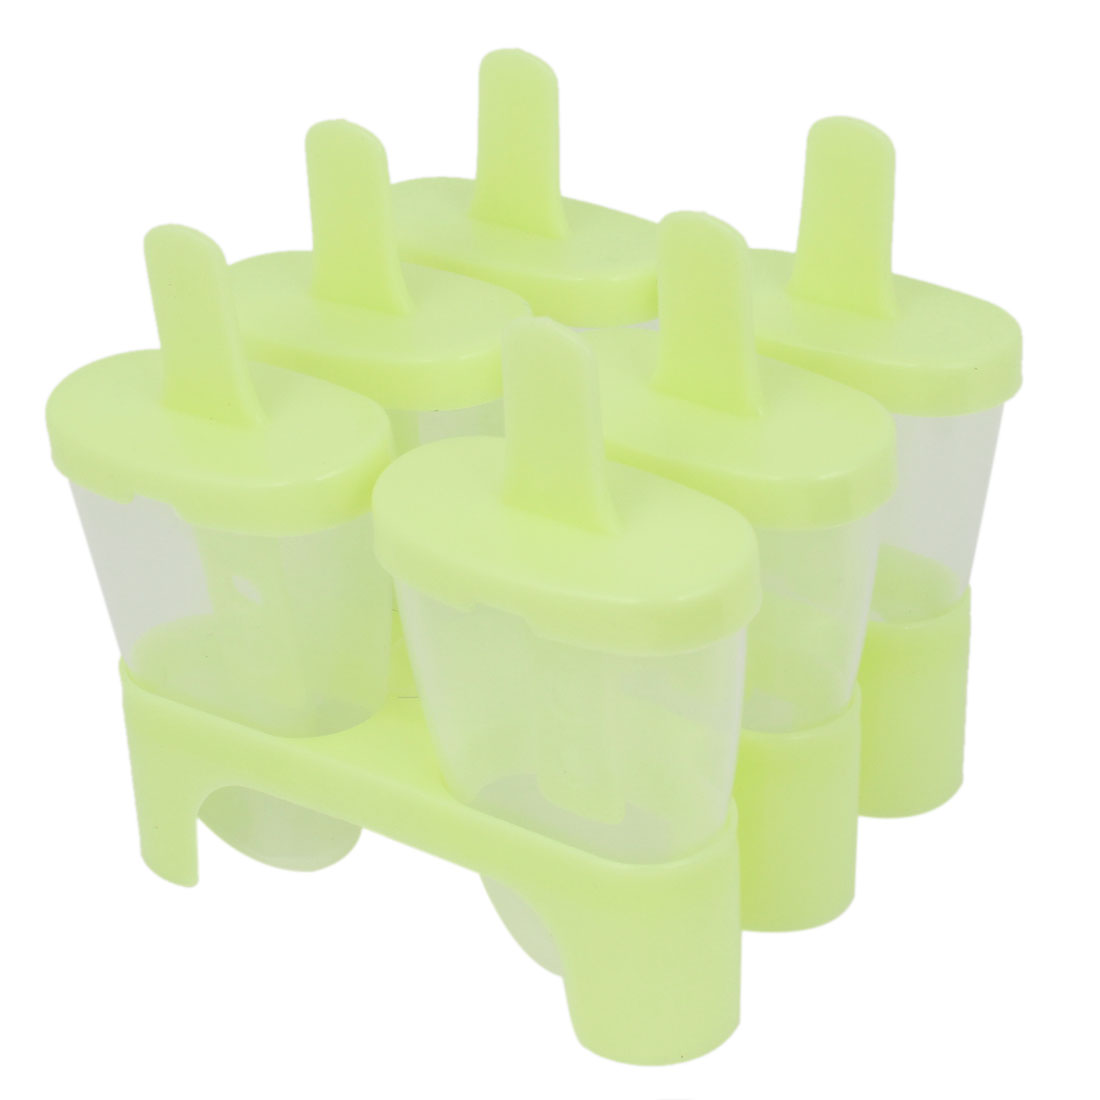 Home Plastic DIY Ice Candy Bar Mold Frozen Juice Frame Tray Sherbet Maker Green 6 Pcs